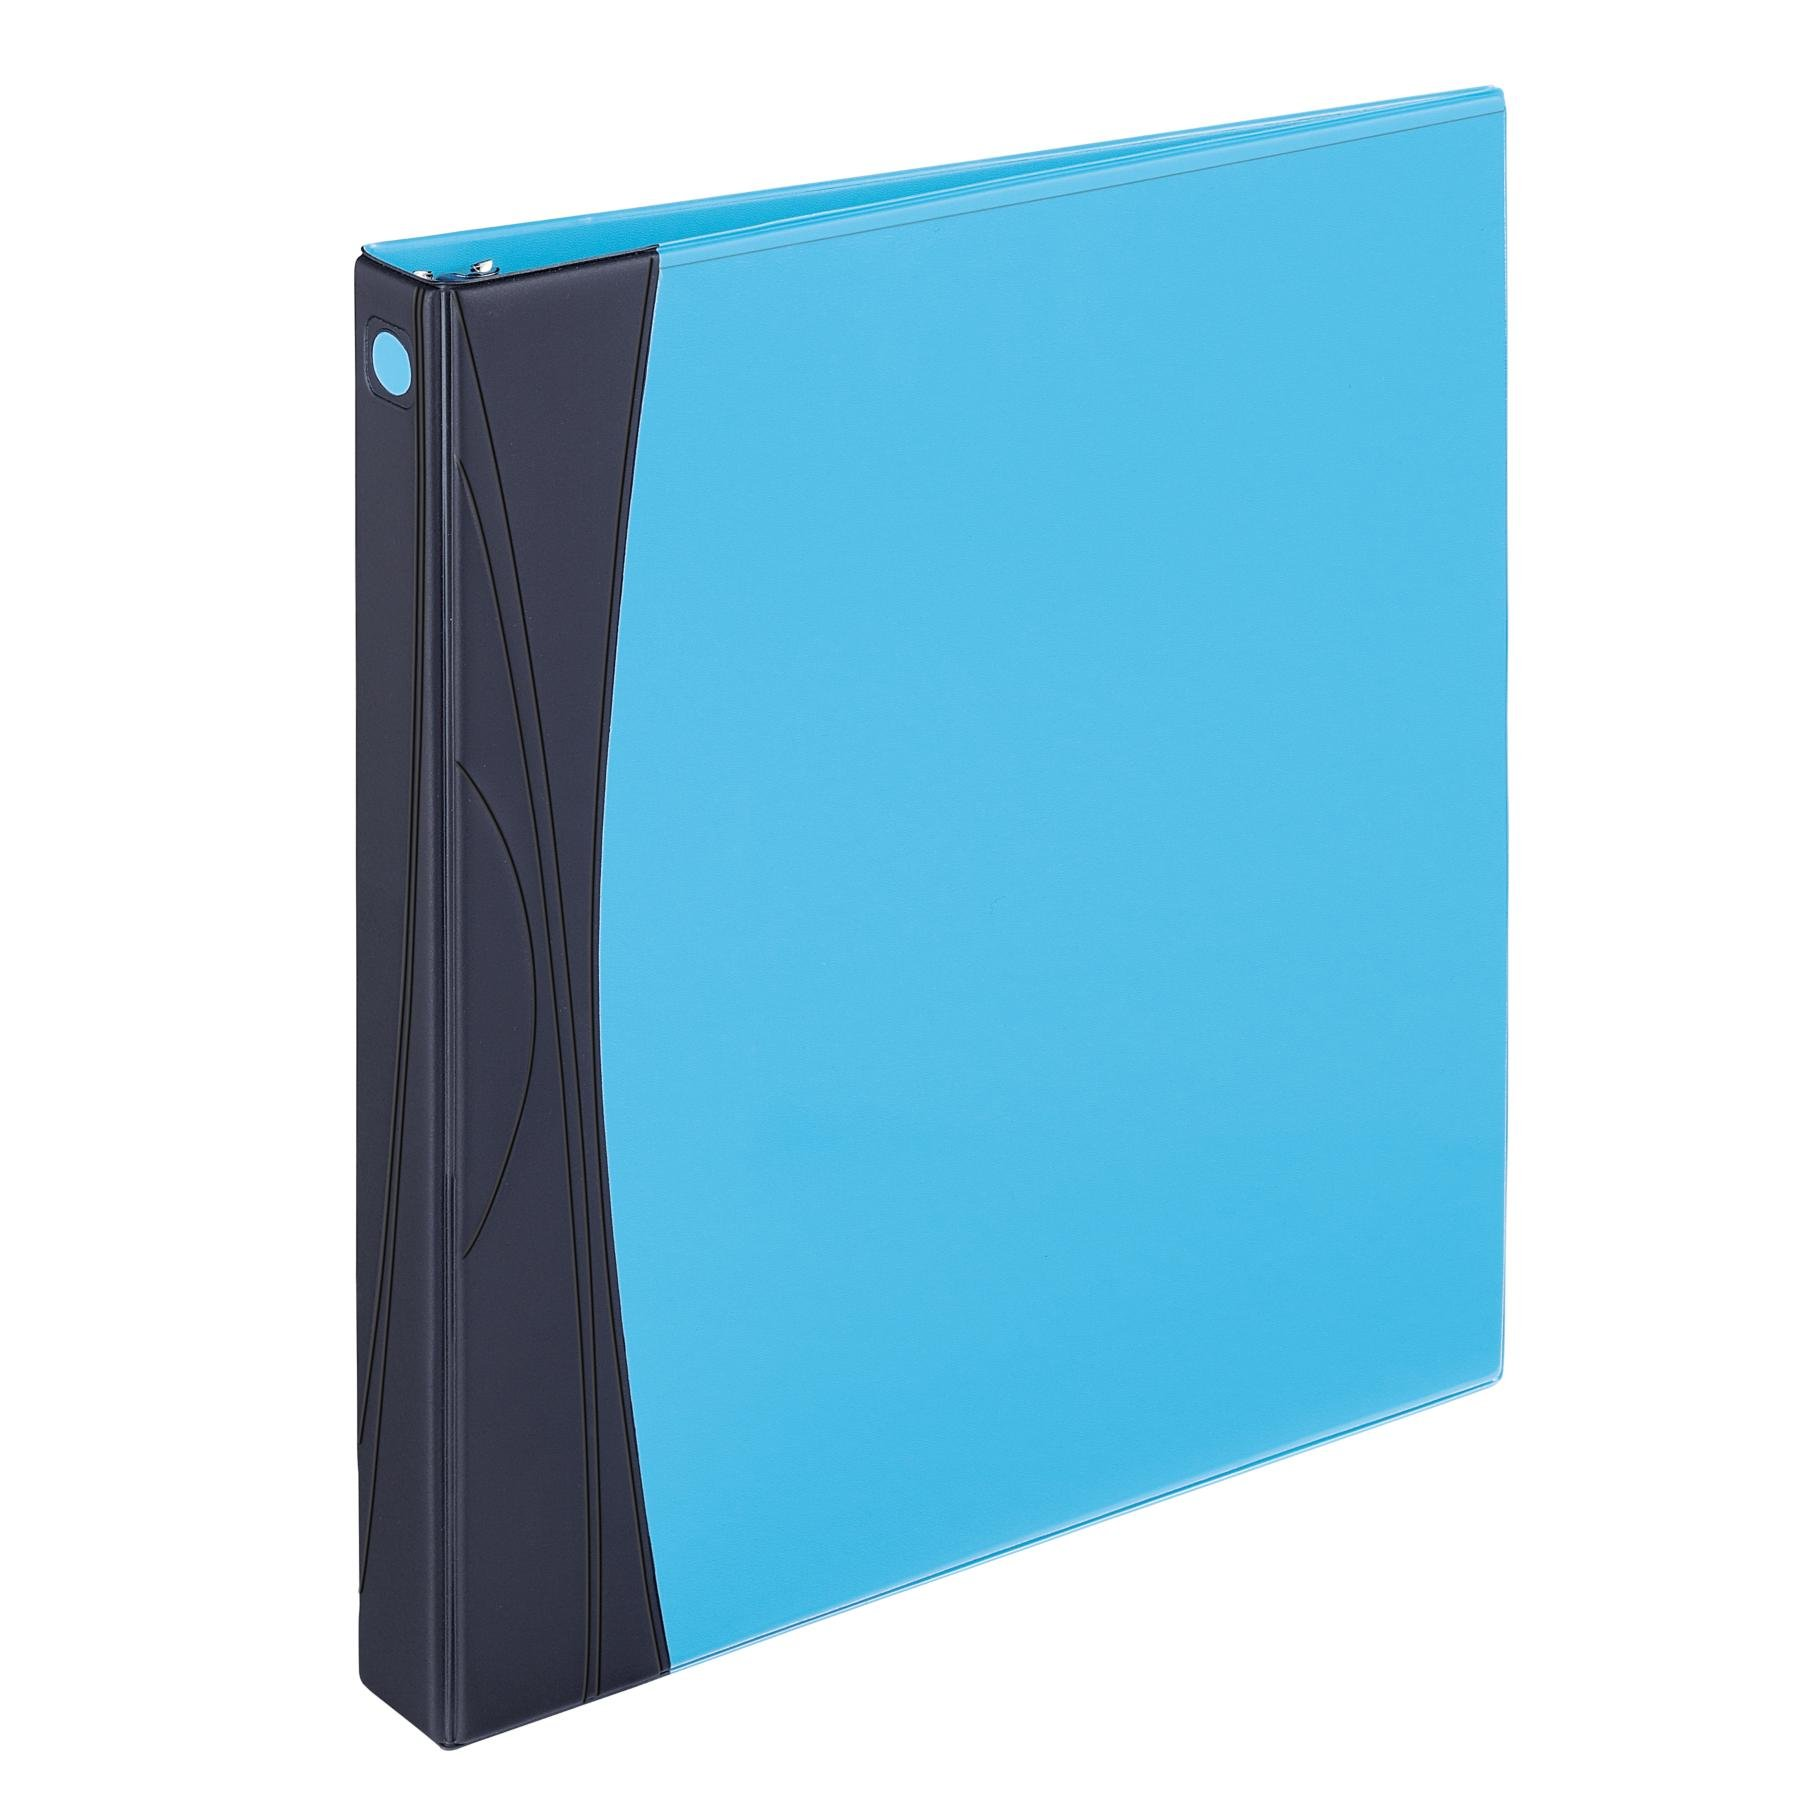 Avery Comfort Touch Durable View Binder with 1-Inch Slant Ring, Holds 8.5 x 11-Inch Paper, Aqua with Black Spine, 1 Binder (17408)